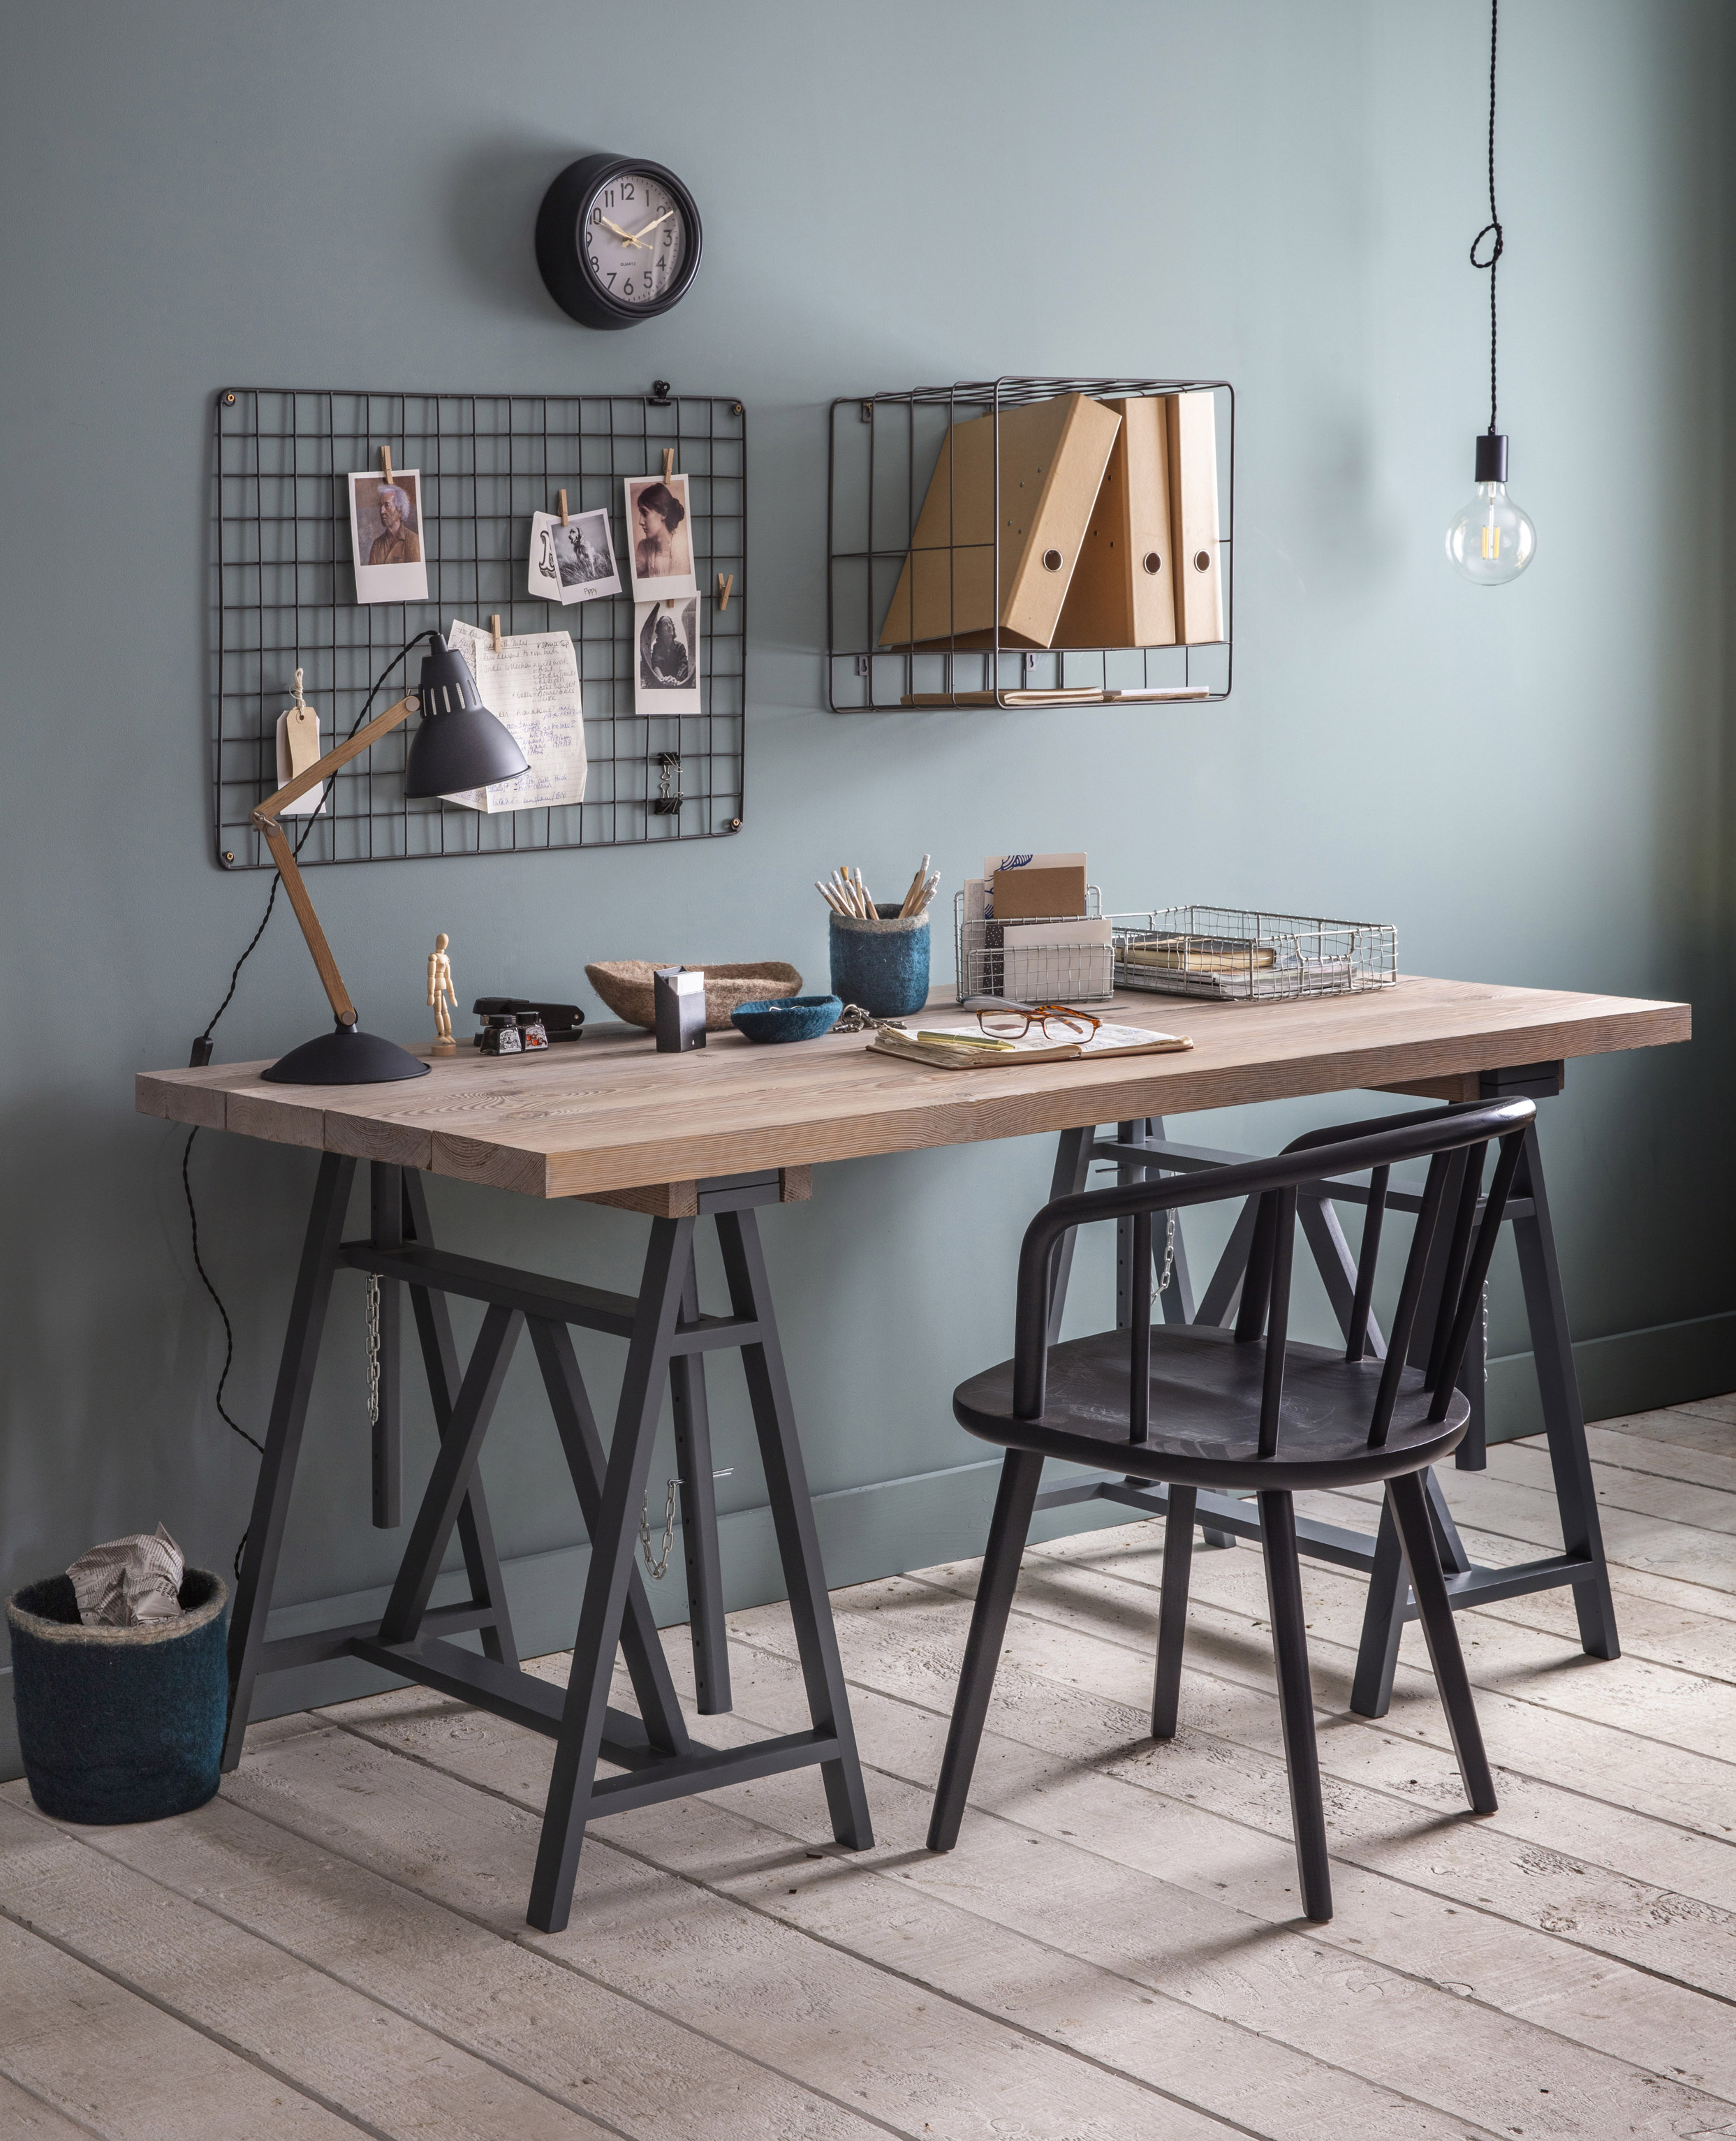 Workshop Trestle Desk, £550; Carver Chair, £195; Farringdon Memo Board, £30; Greenwich Clock, from £25; Bermondsey Table Light, £100, Garden Trading (Garden Trading/PA)